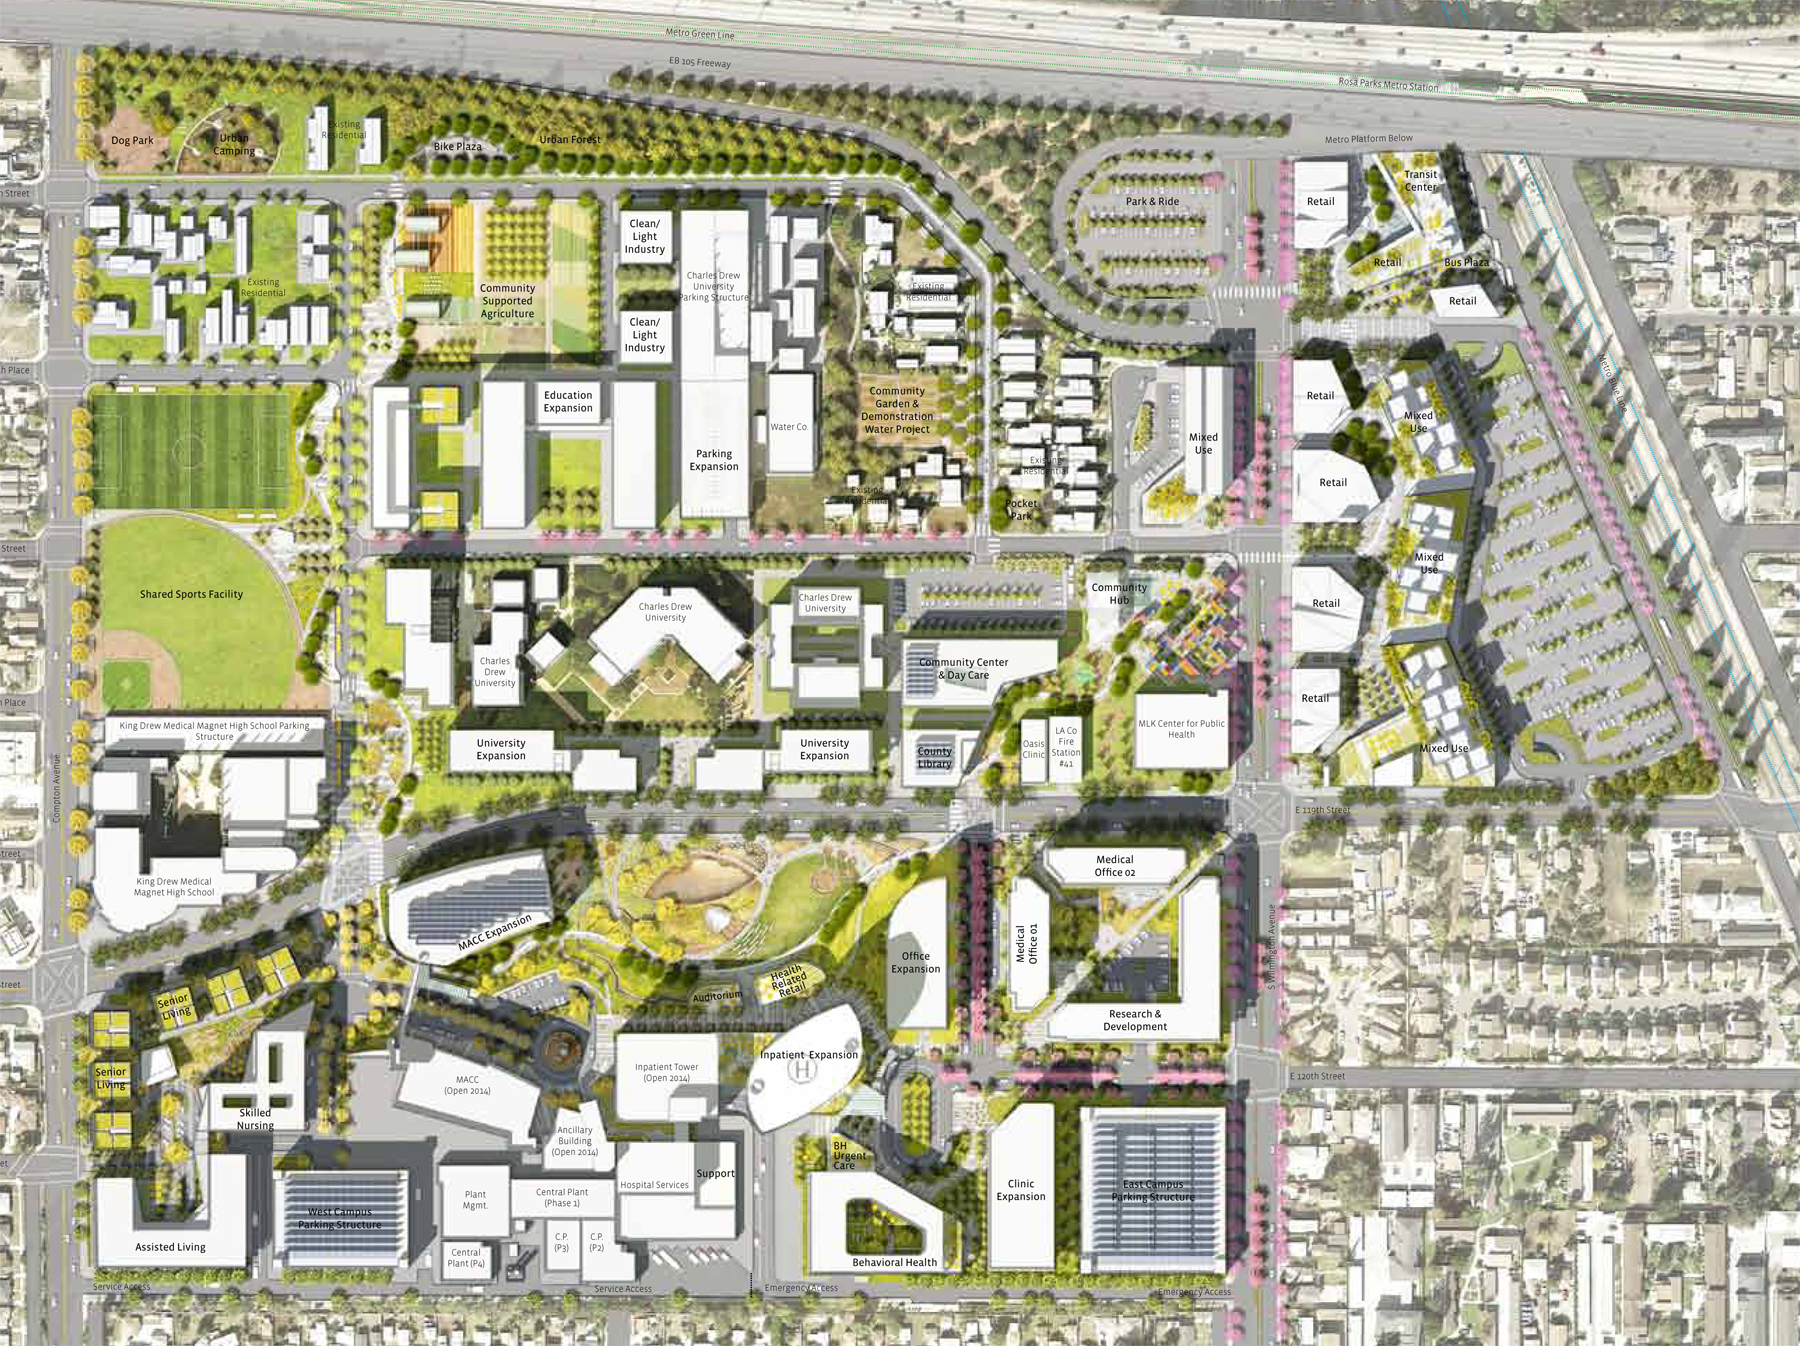 Martin Luther King, Jr. Hospital Campus Master Plan